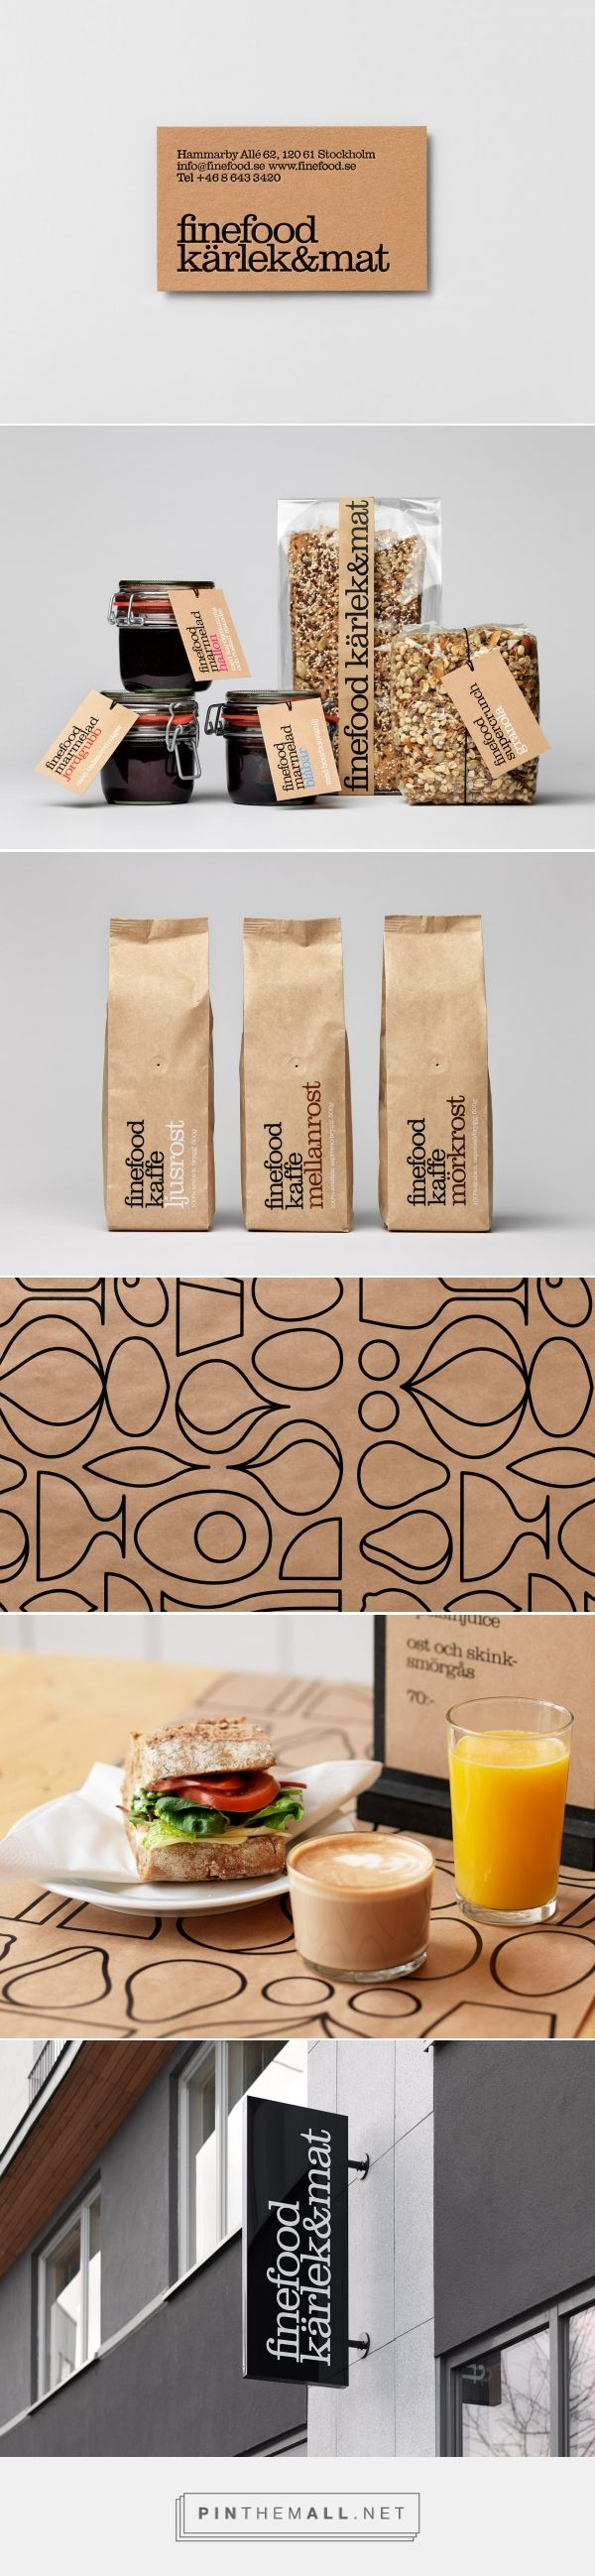 Finefood packaging and branding by The Studio curated by Packaging Diva PD. Was one of the first in a wave of modern delis in Stockholm in the late nineties that combined table serving, take away food, a deli and a store with carefully curated produce.